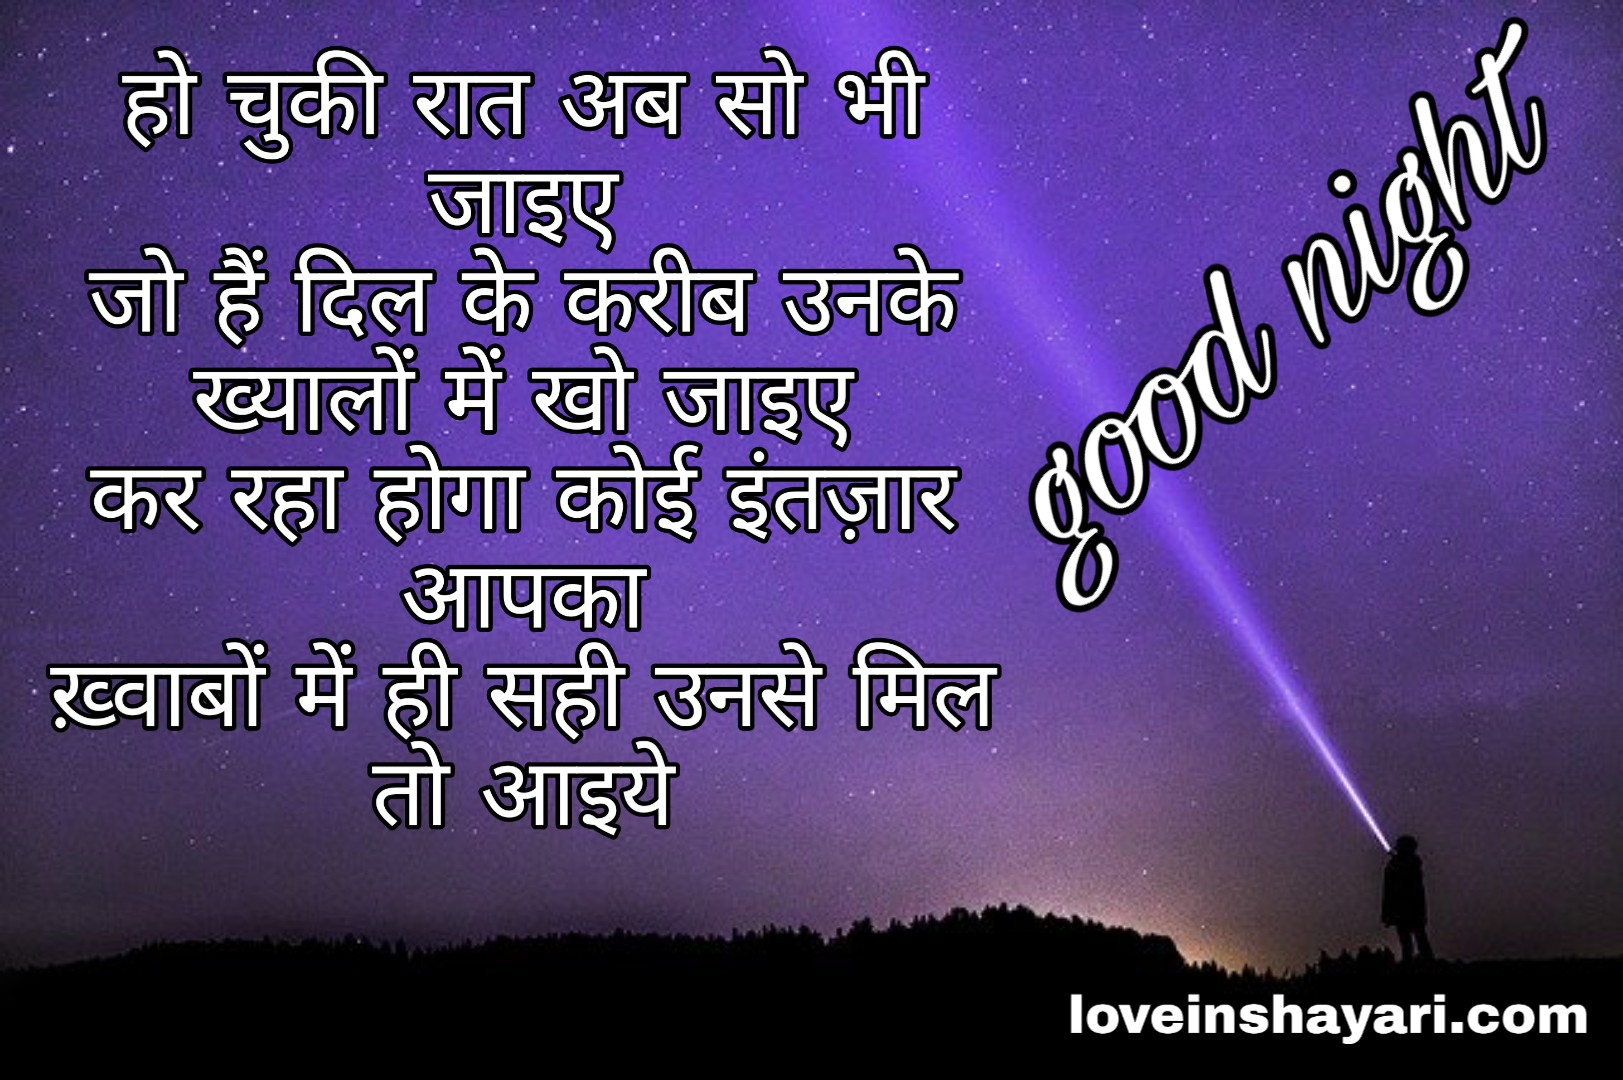 Photo of Good night shayari 2020